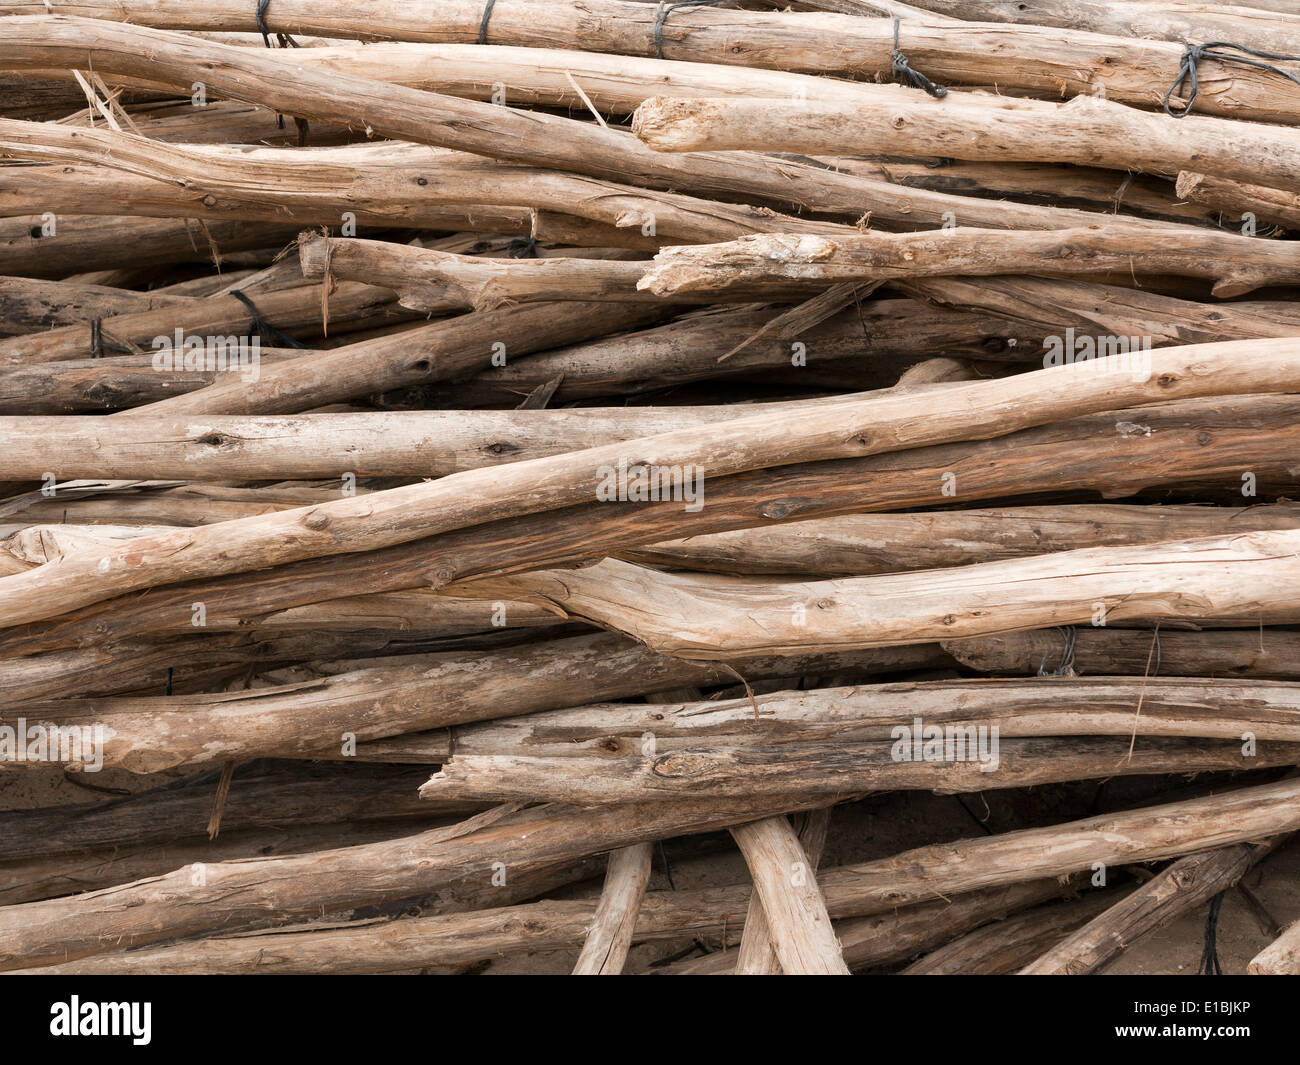 Close up of a pile of wooden props laying horizontally - Stock Image